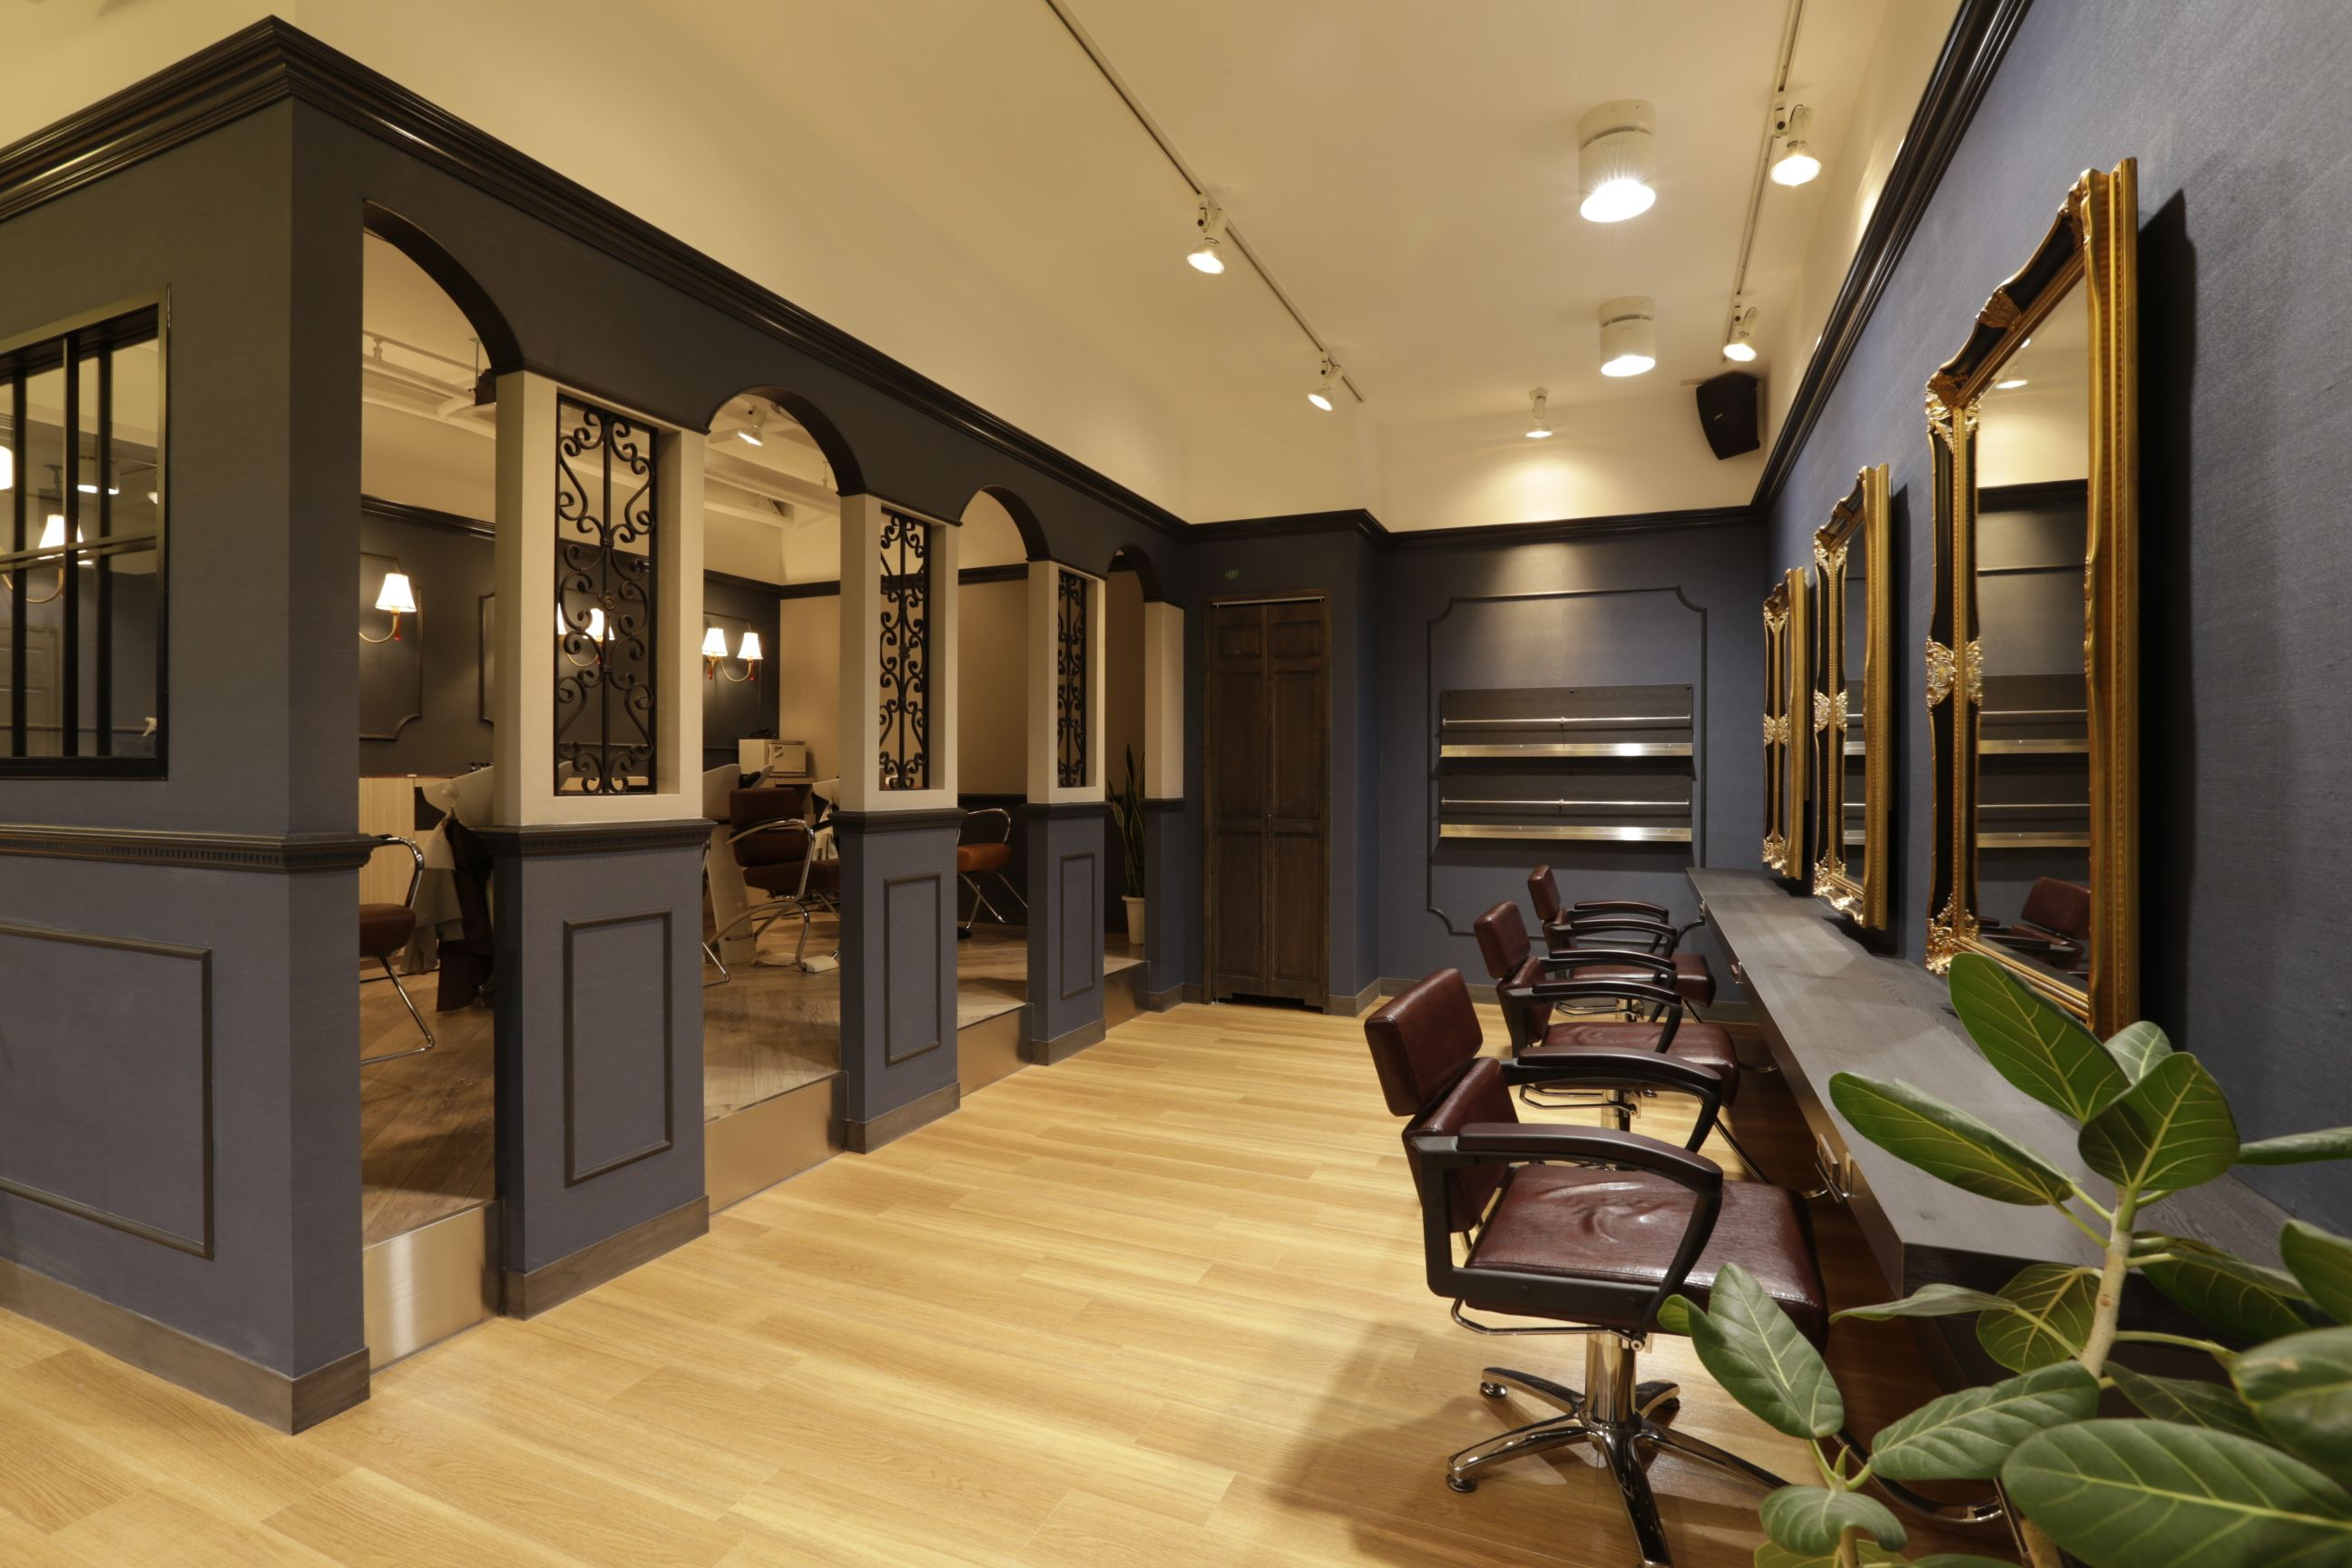 Beauty salon interior design ideas chairs mirrors for Hair salons designs ideas